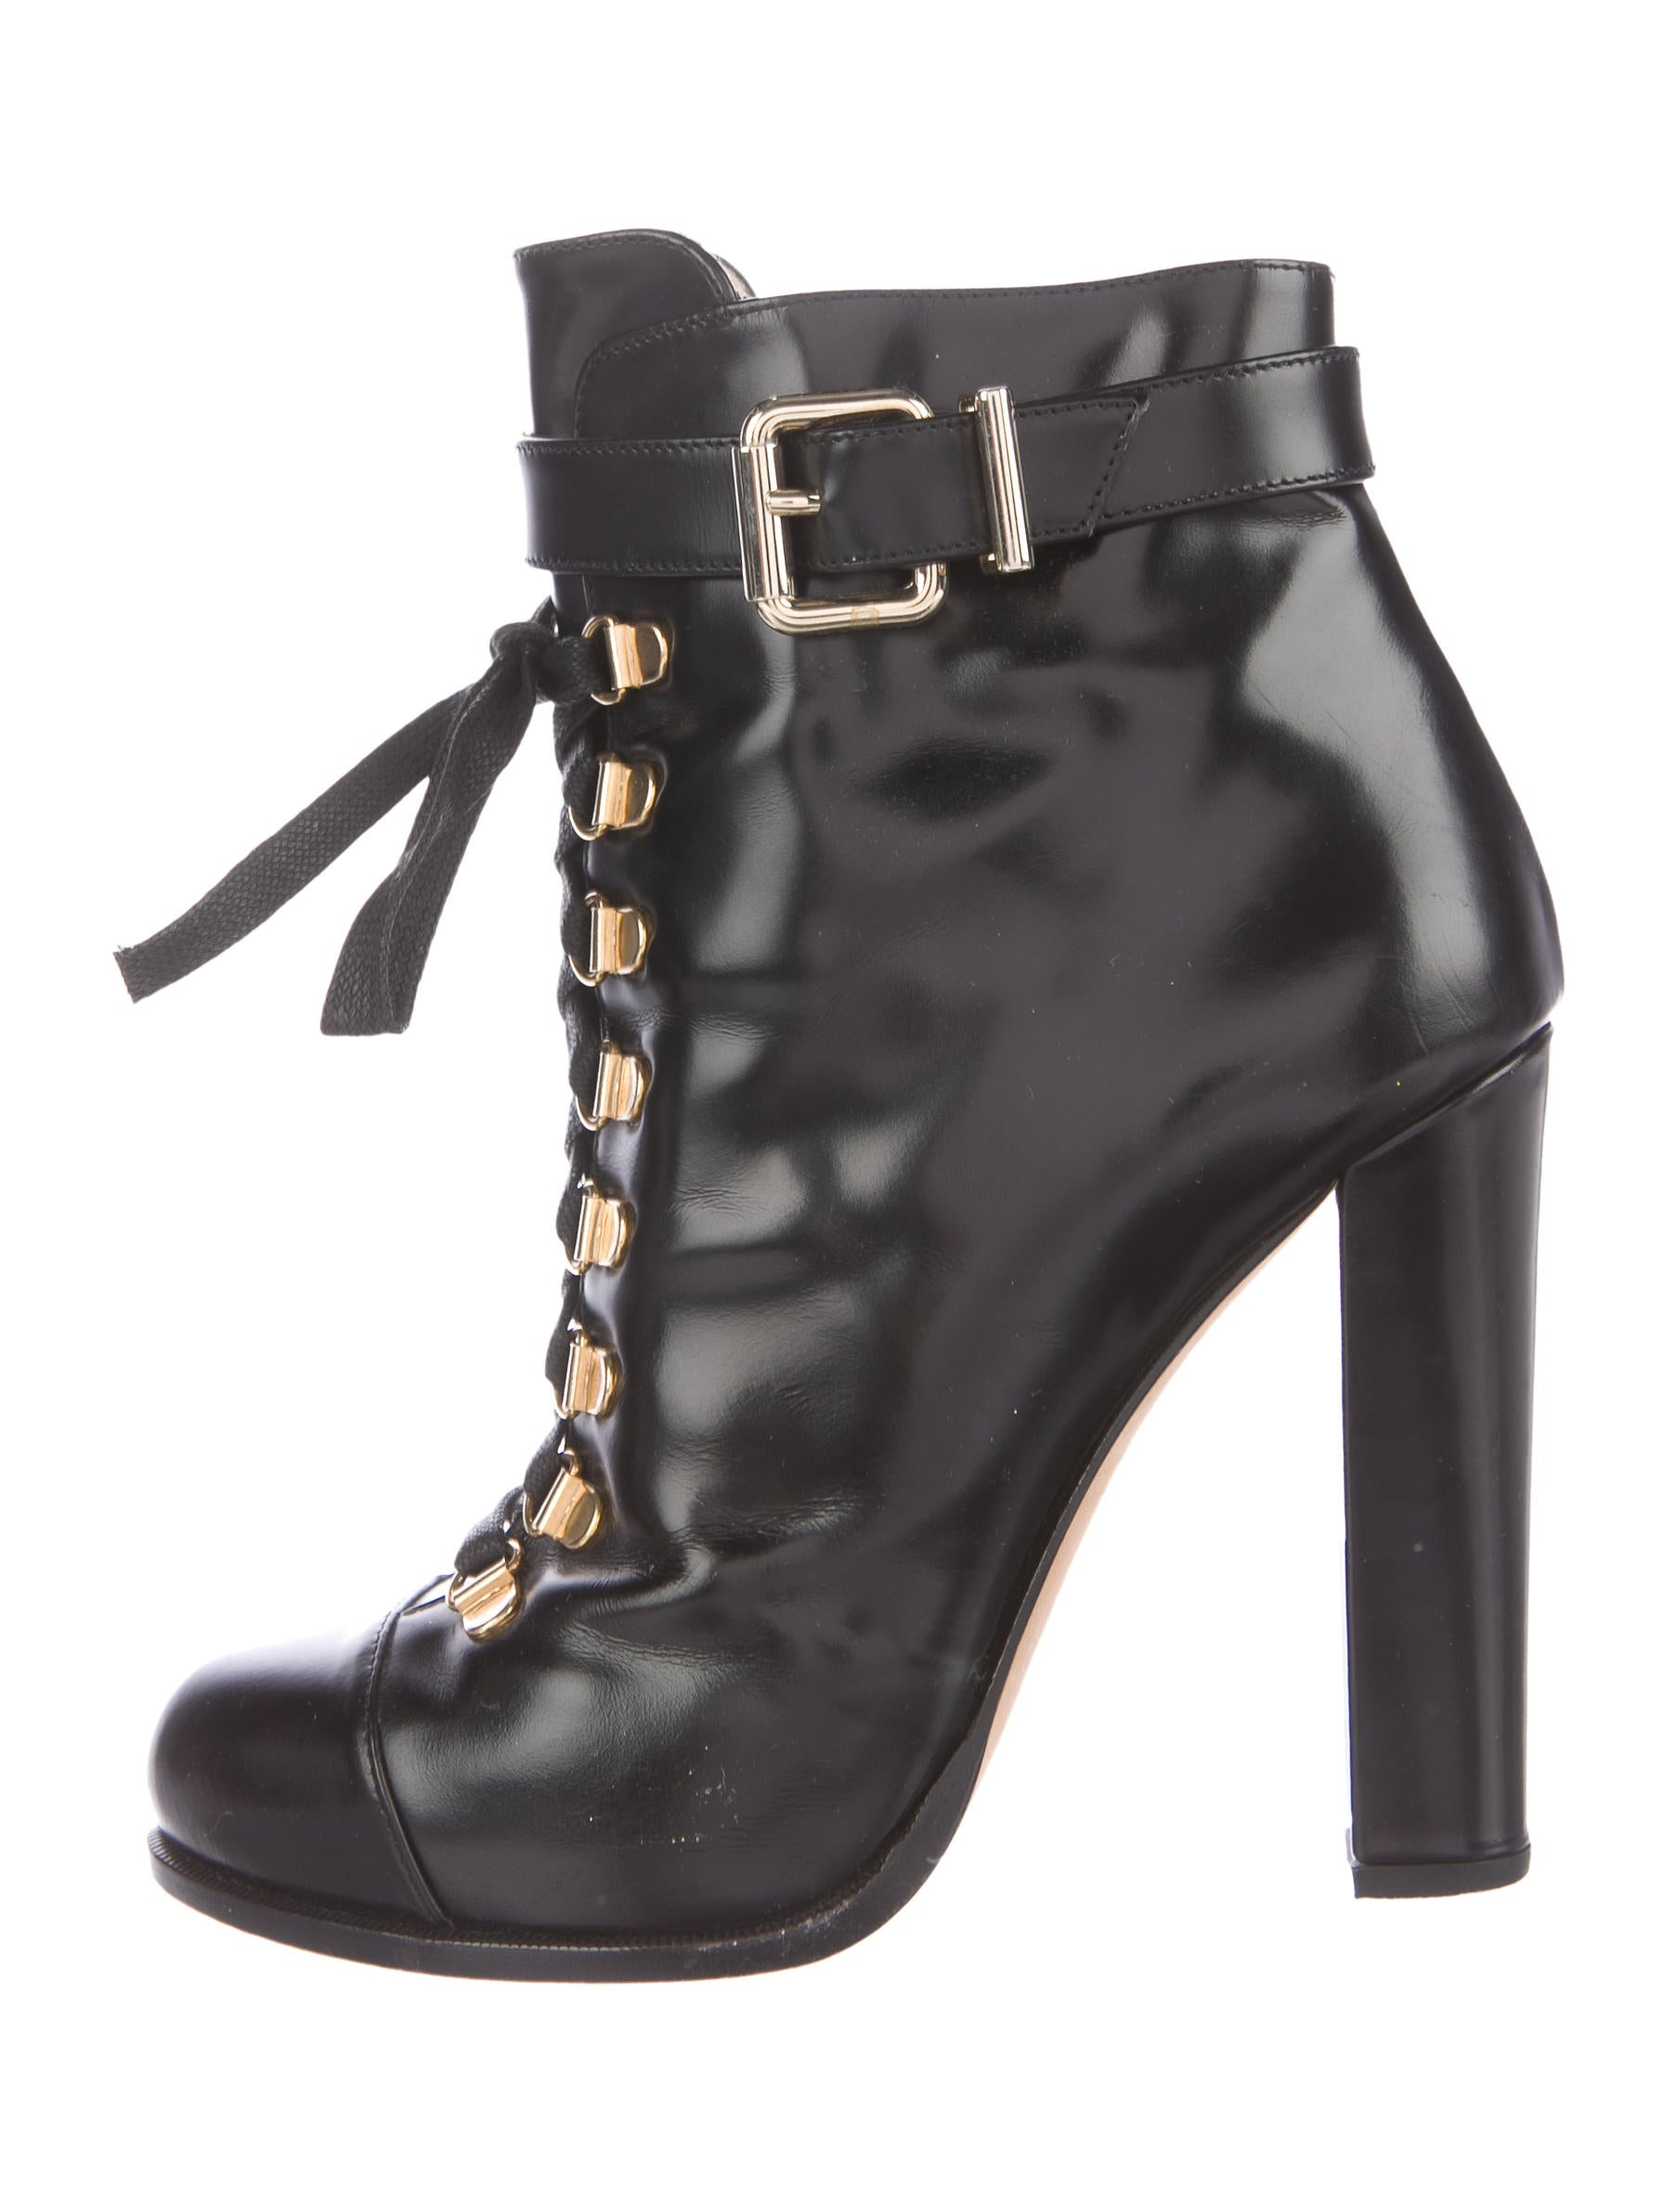 fendi leather lace up ankle boots shoes fen59550 the